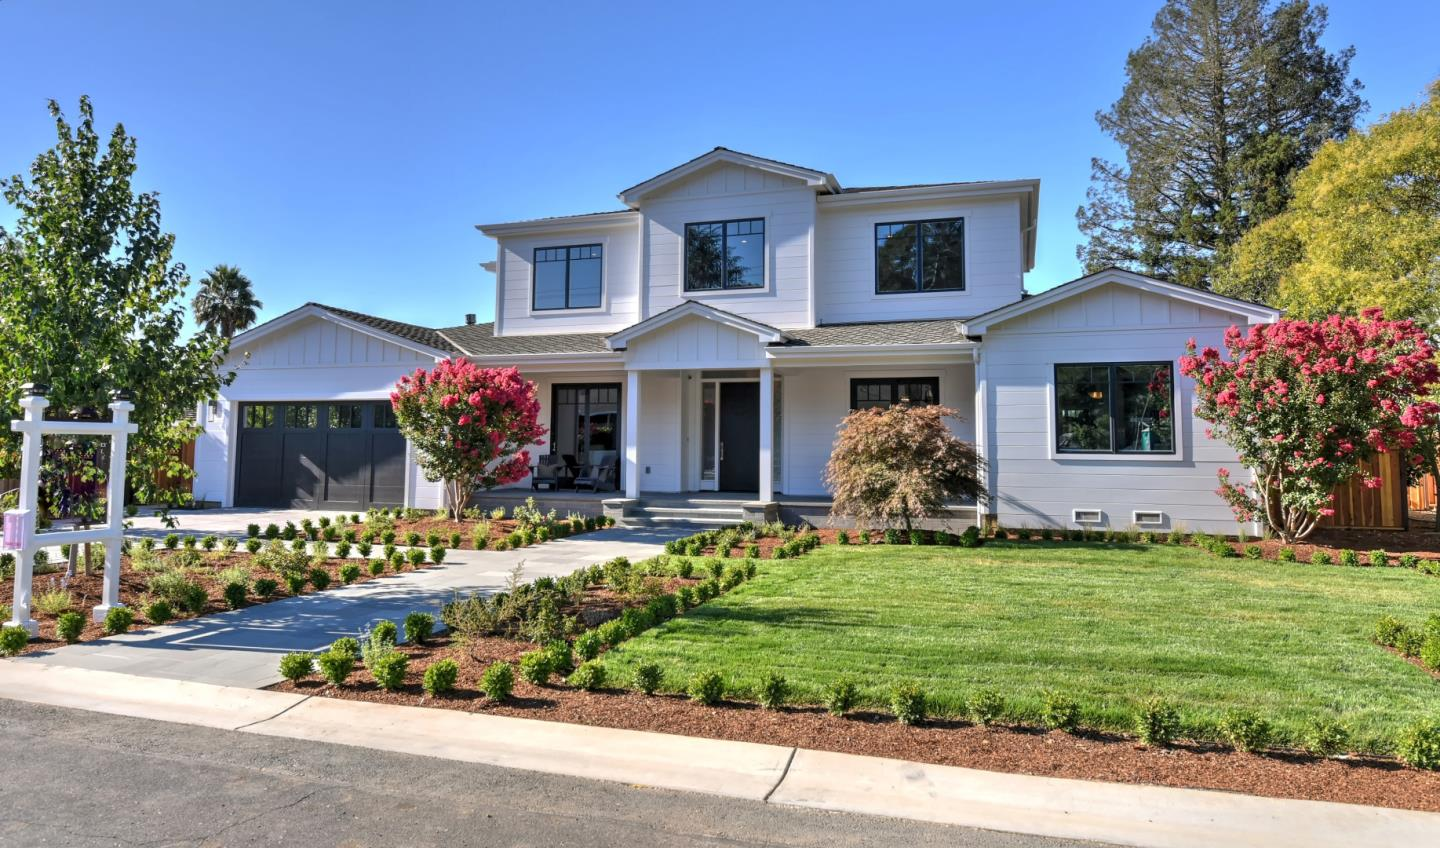 17259 Clearview Drive, LOS GATOS, CA 95032